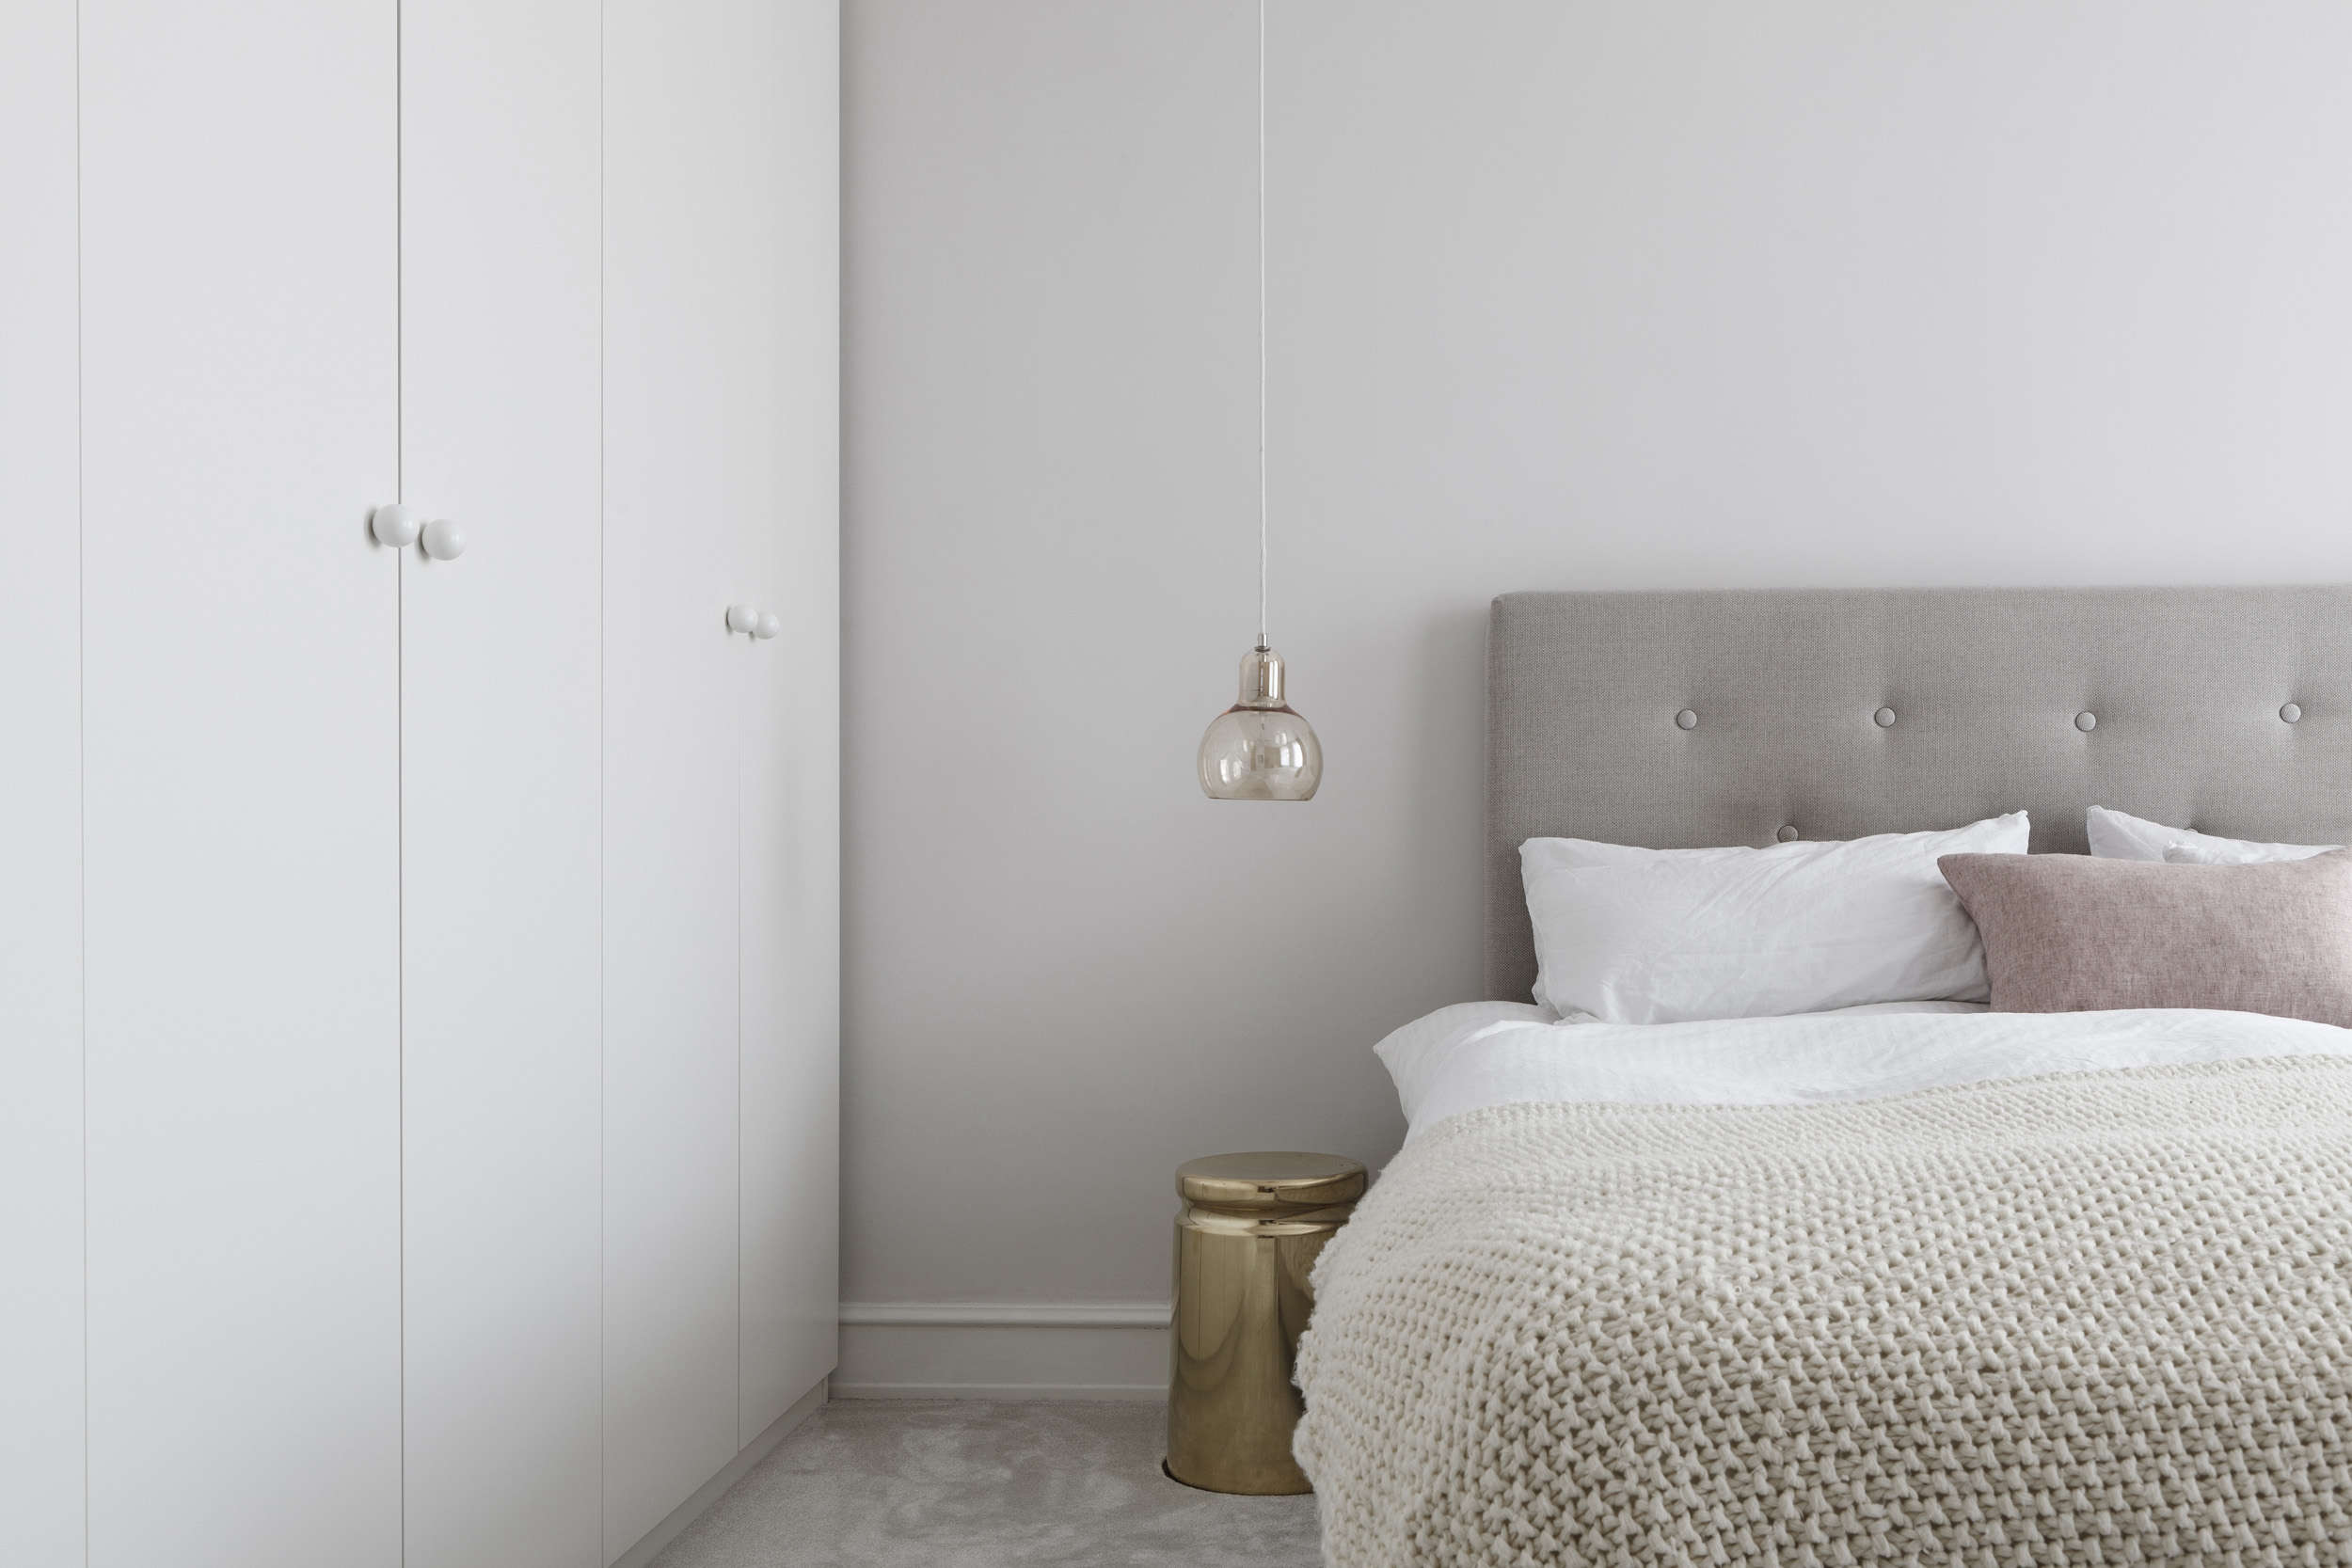 Studio-Oink-House-Cal-II-apartment-remodel-Mainz-Germany-Remodelista-1P